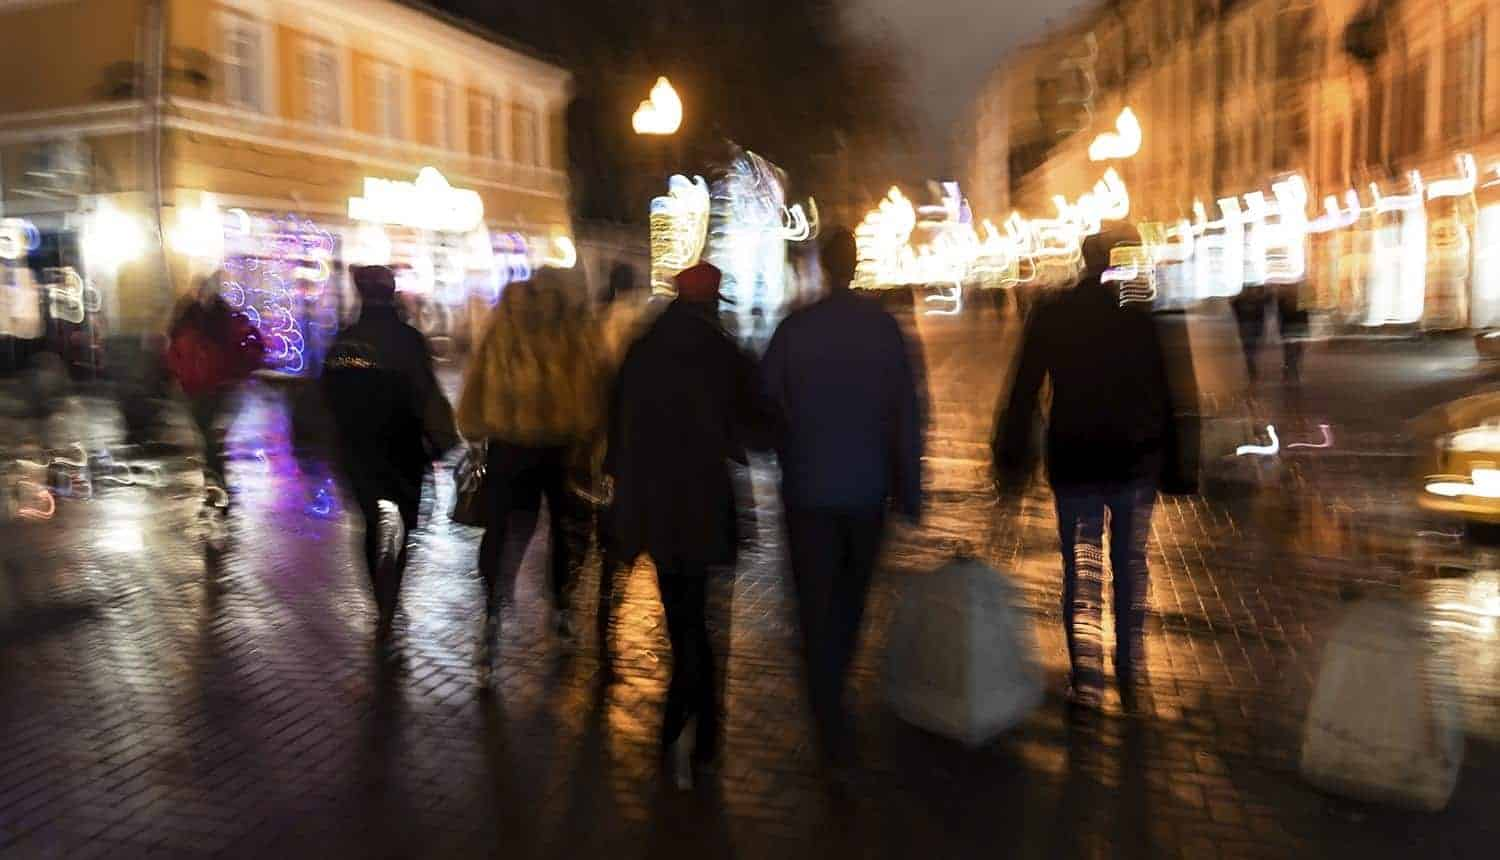 People in the evening on the streets of the city showing shift to zero party data for personalization